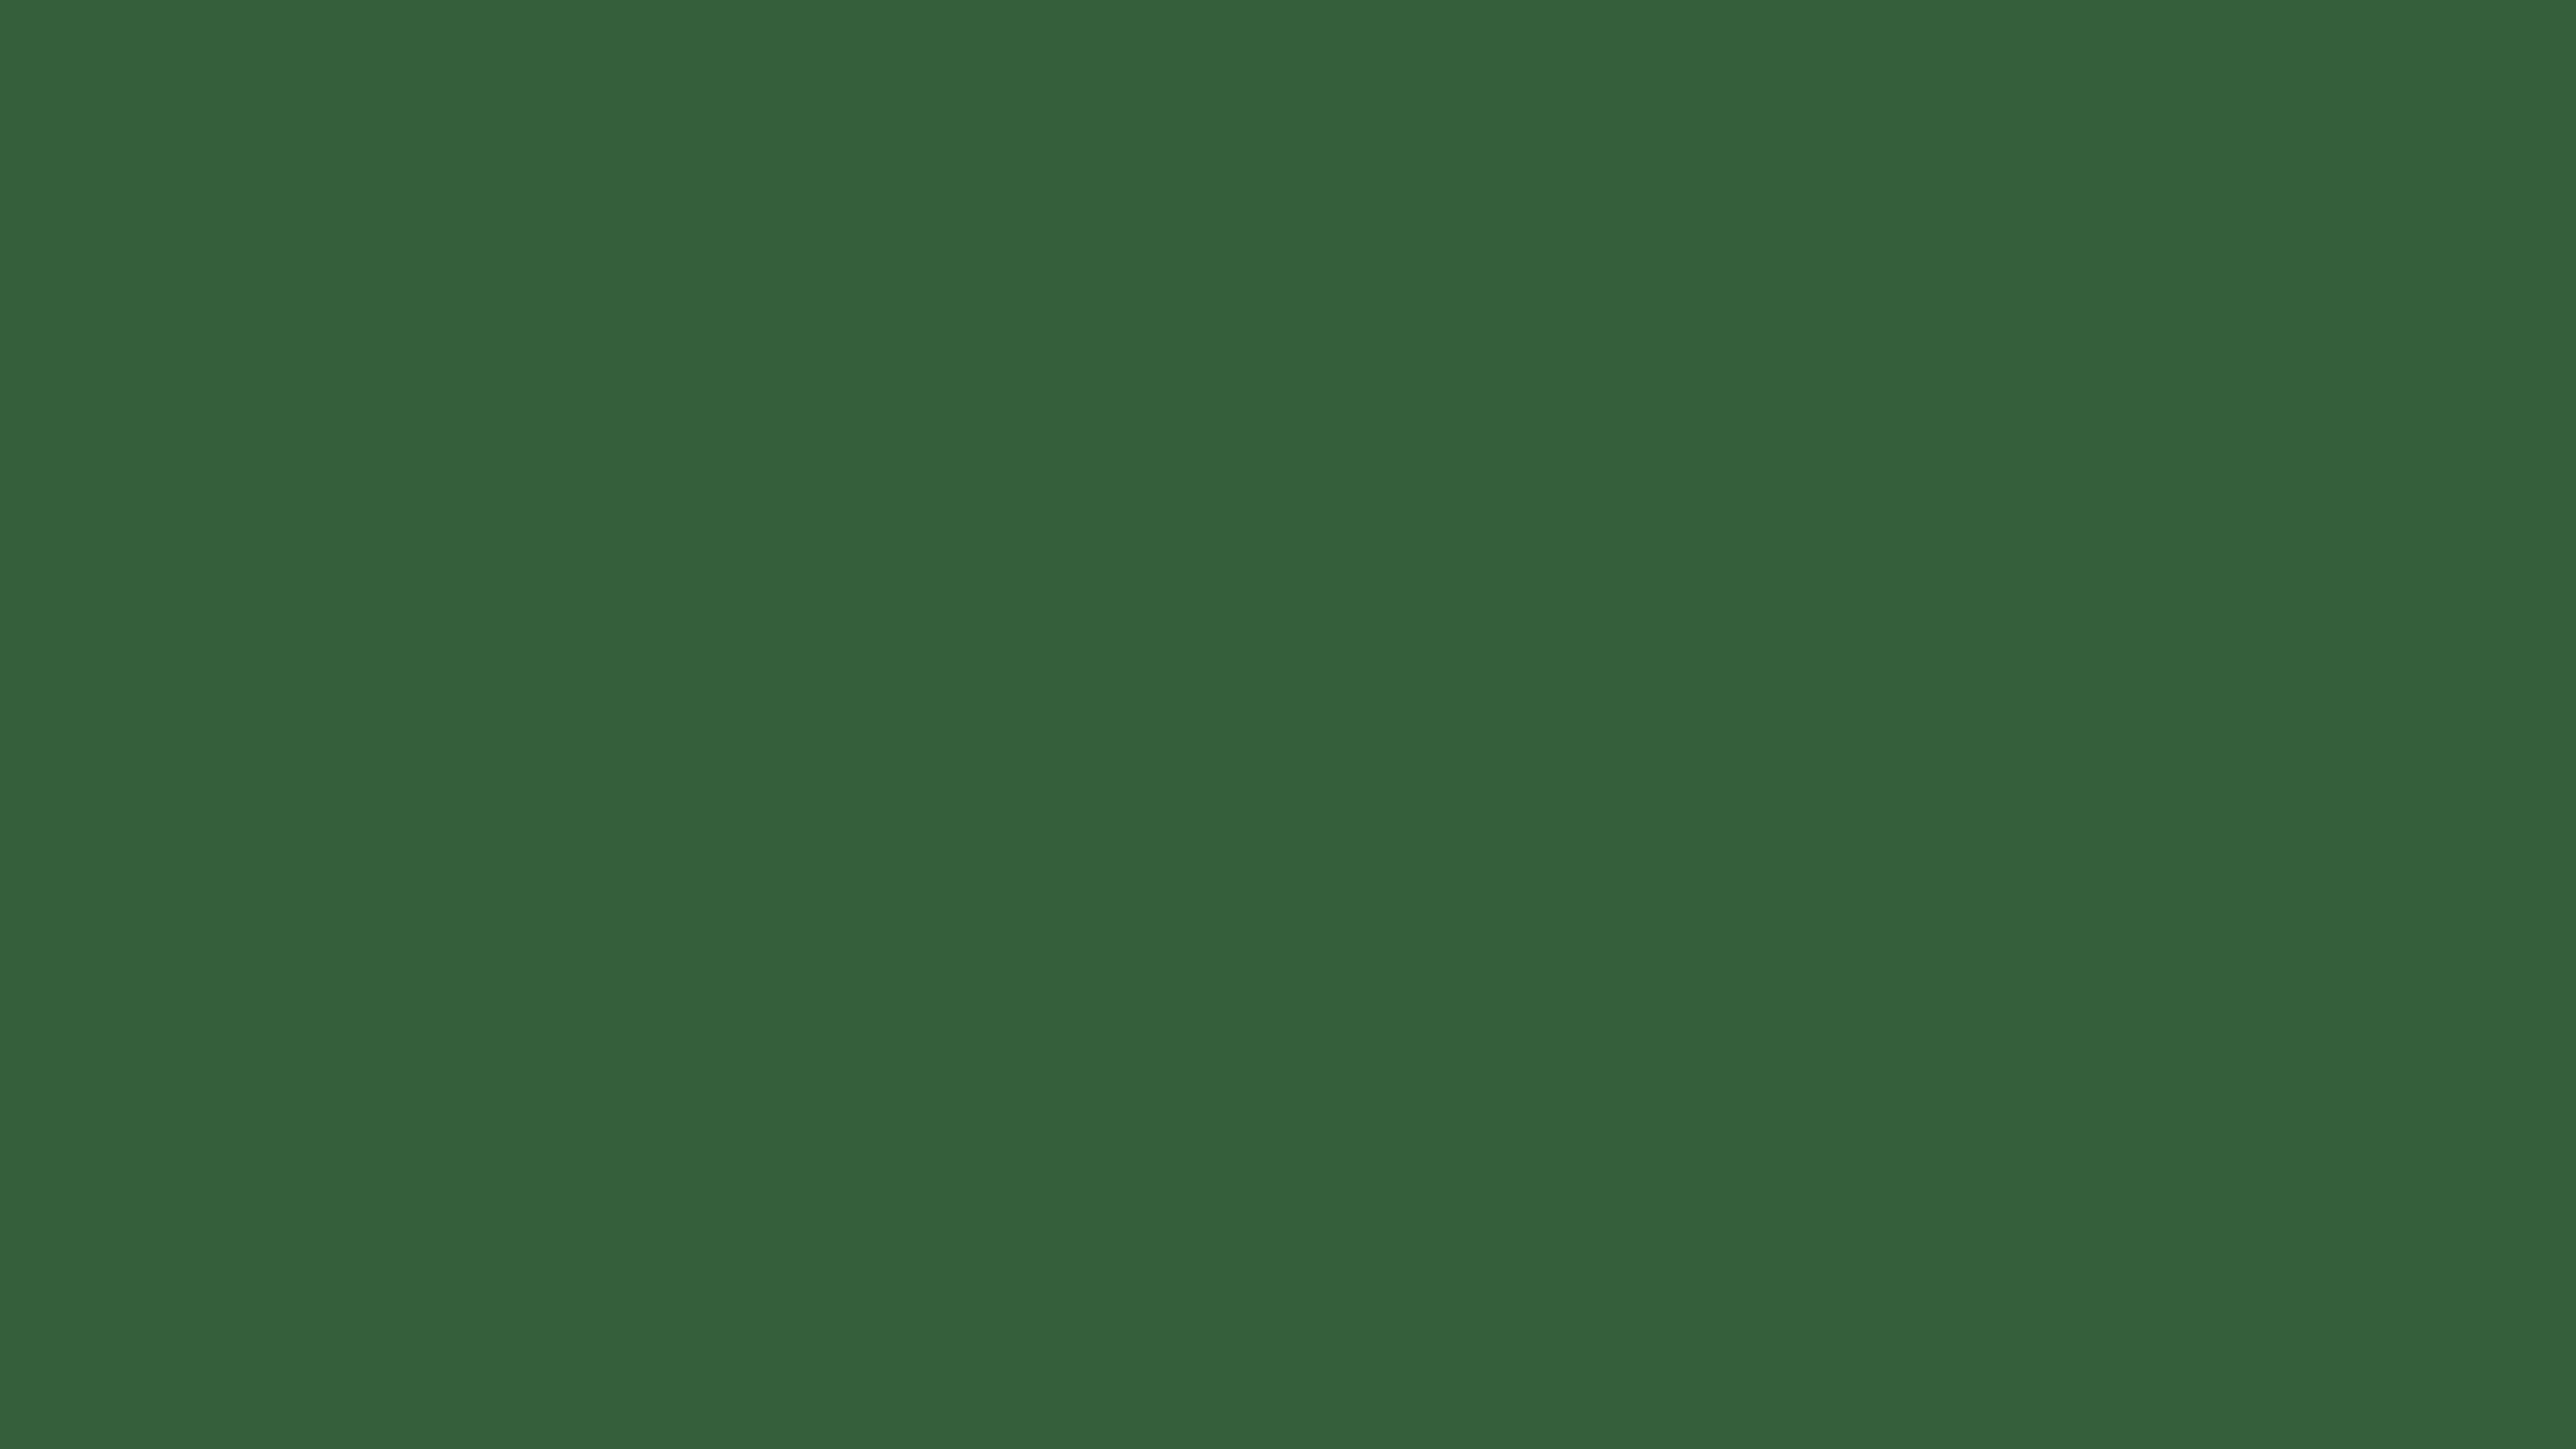 3840x2160 Hunter Green Solid Color Background